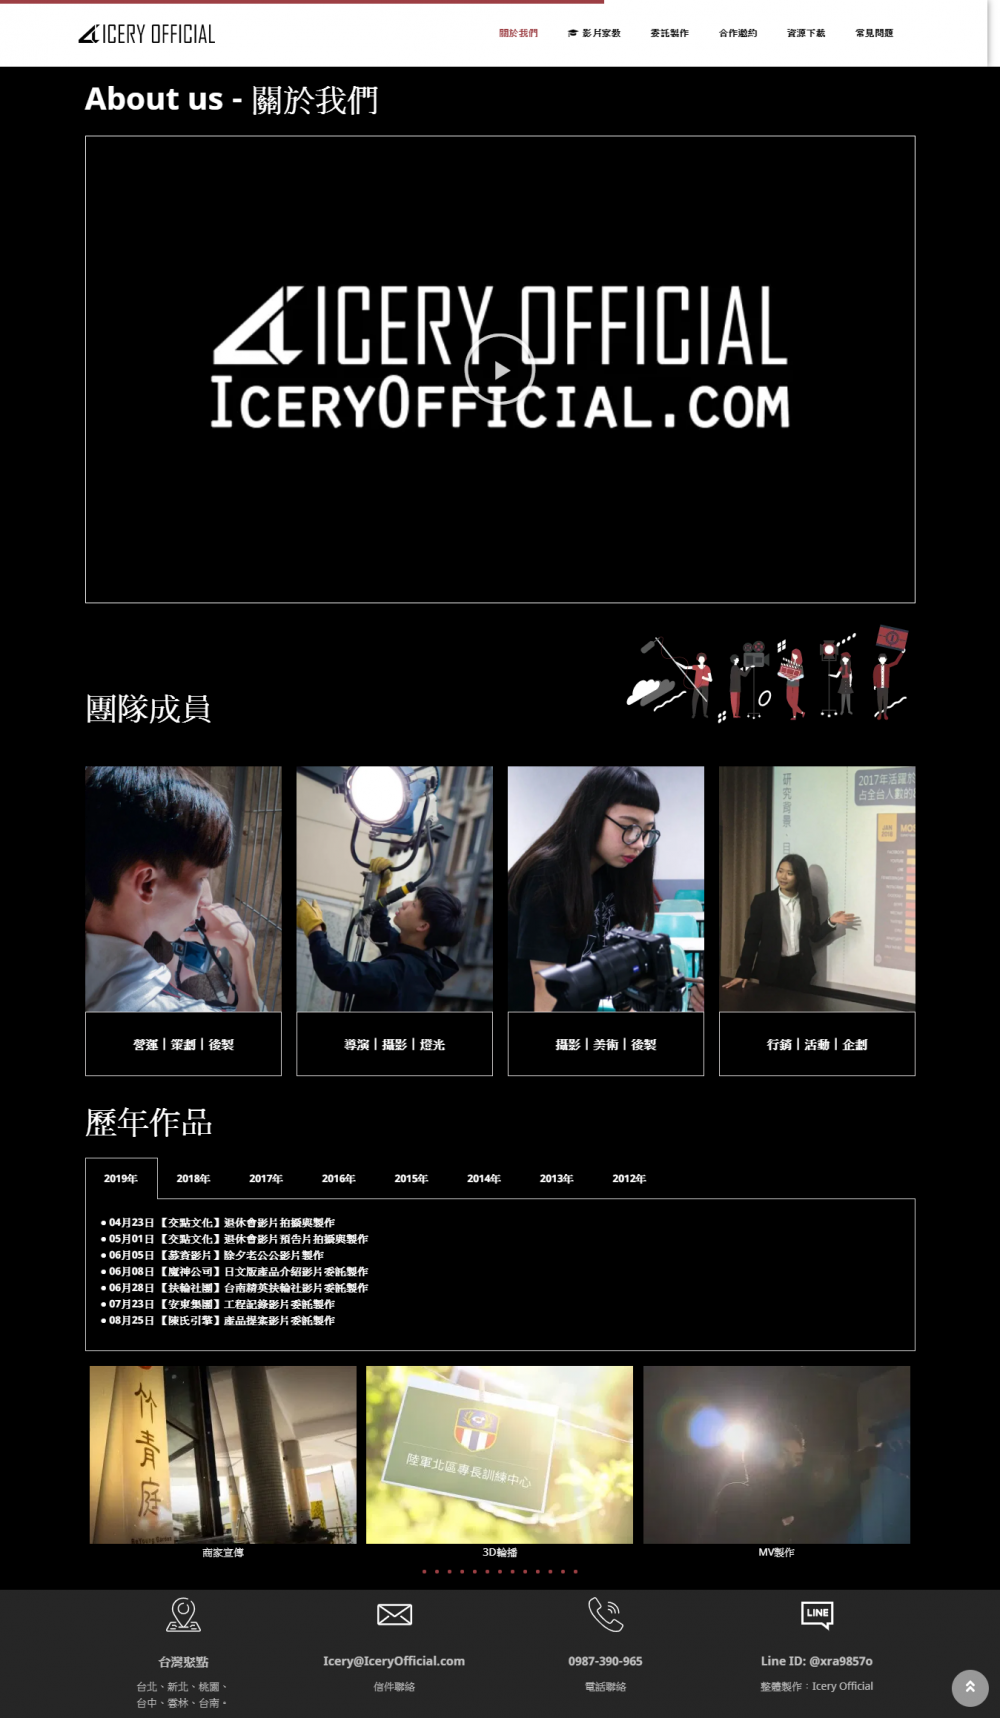 Icery Official影片工作室的關於我們頁面